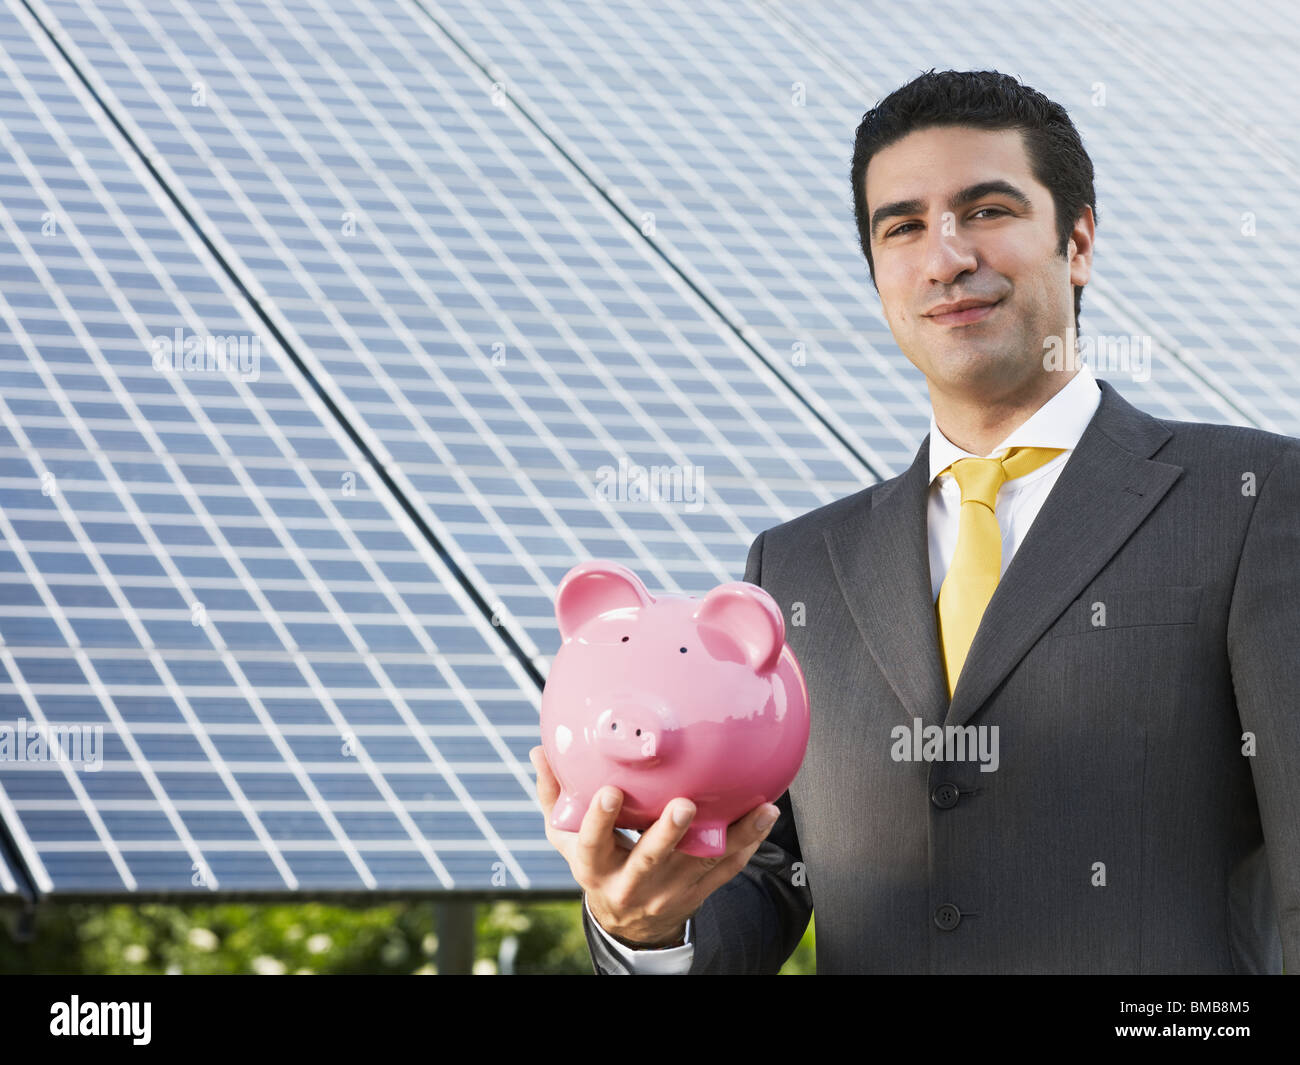 engineer holding piggy bank and standing near solar power station - Stock Image